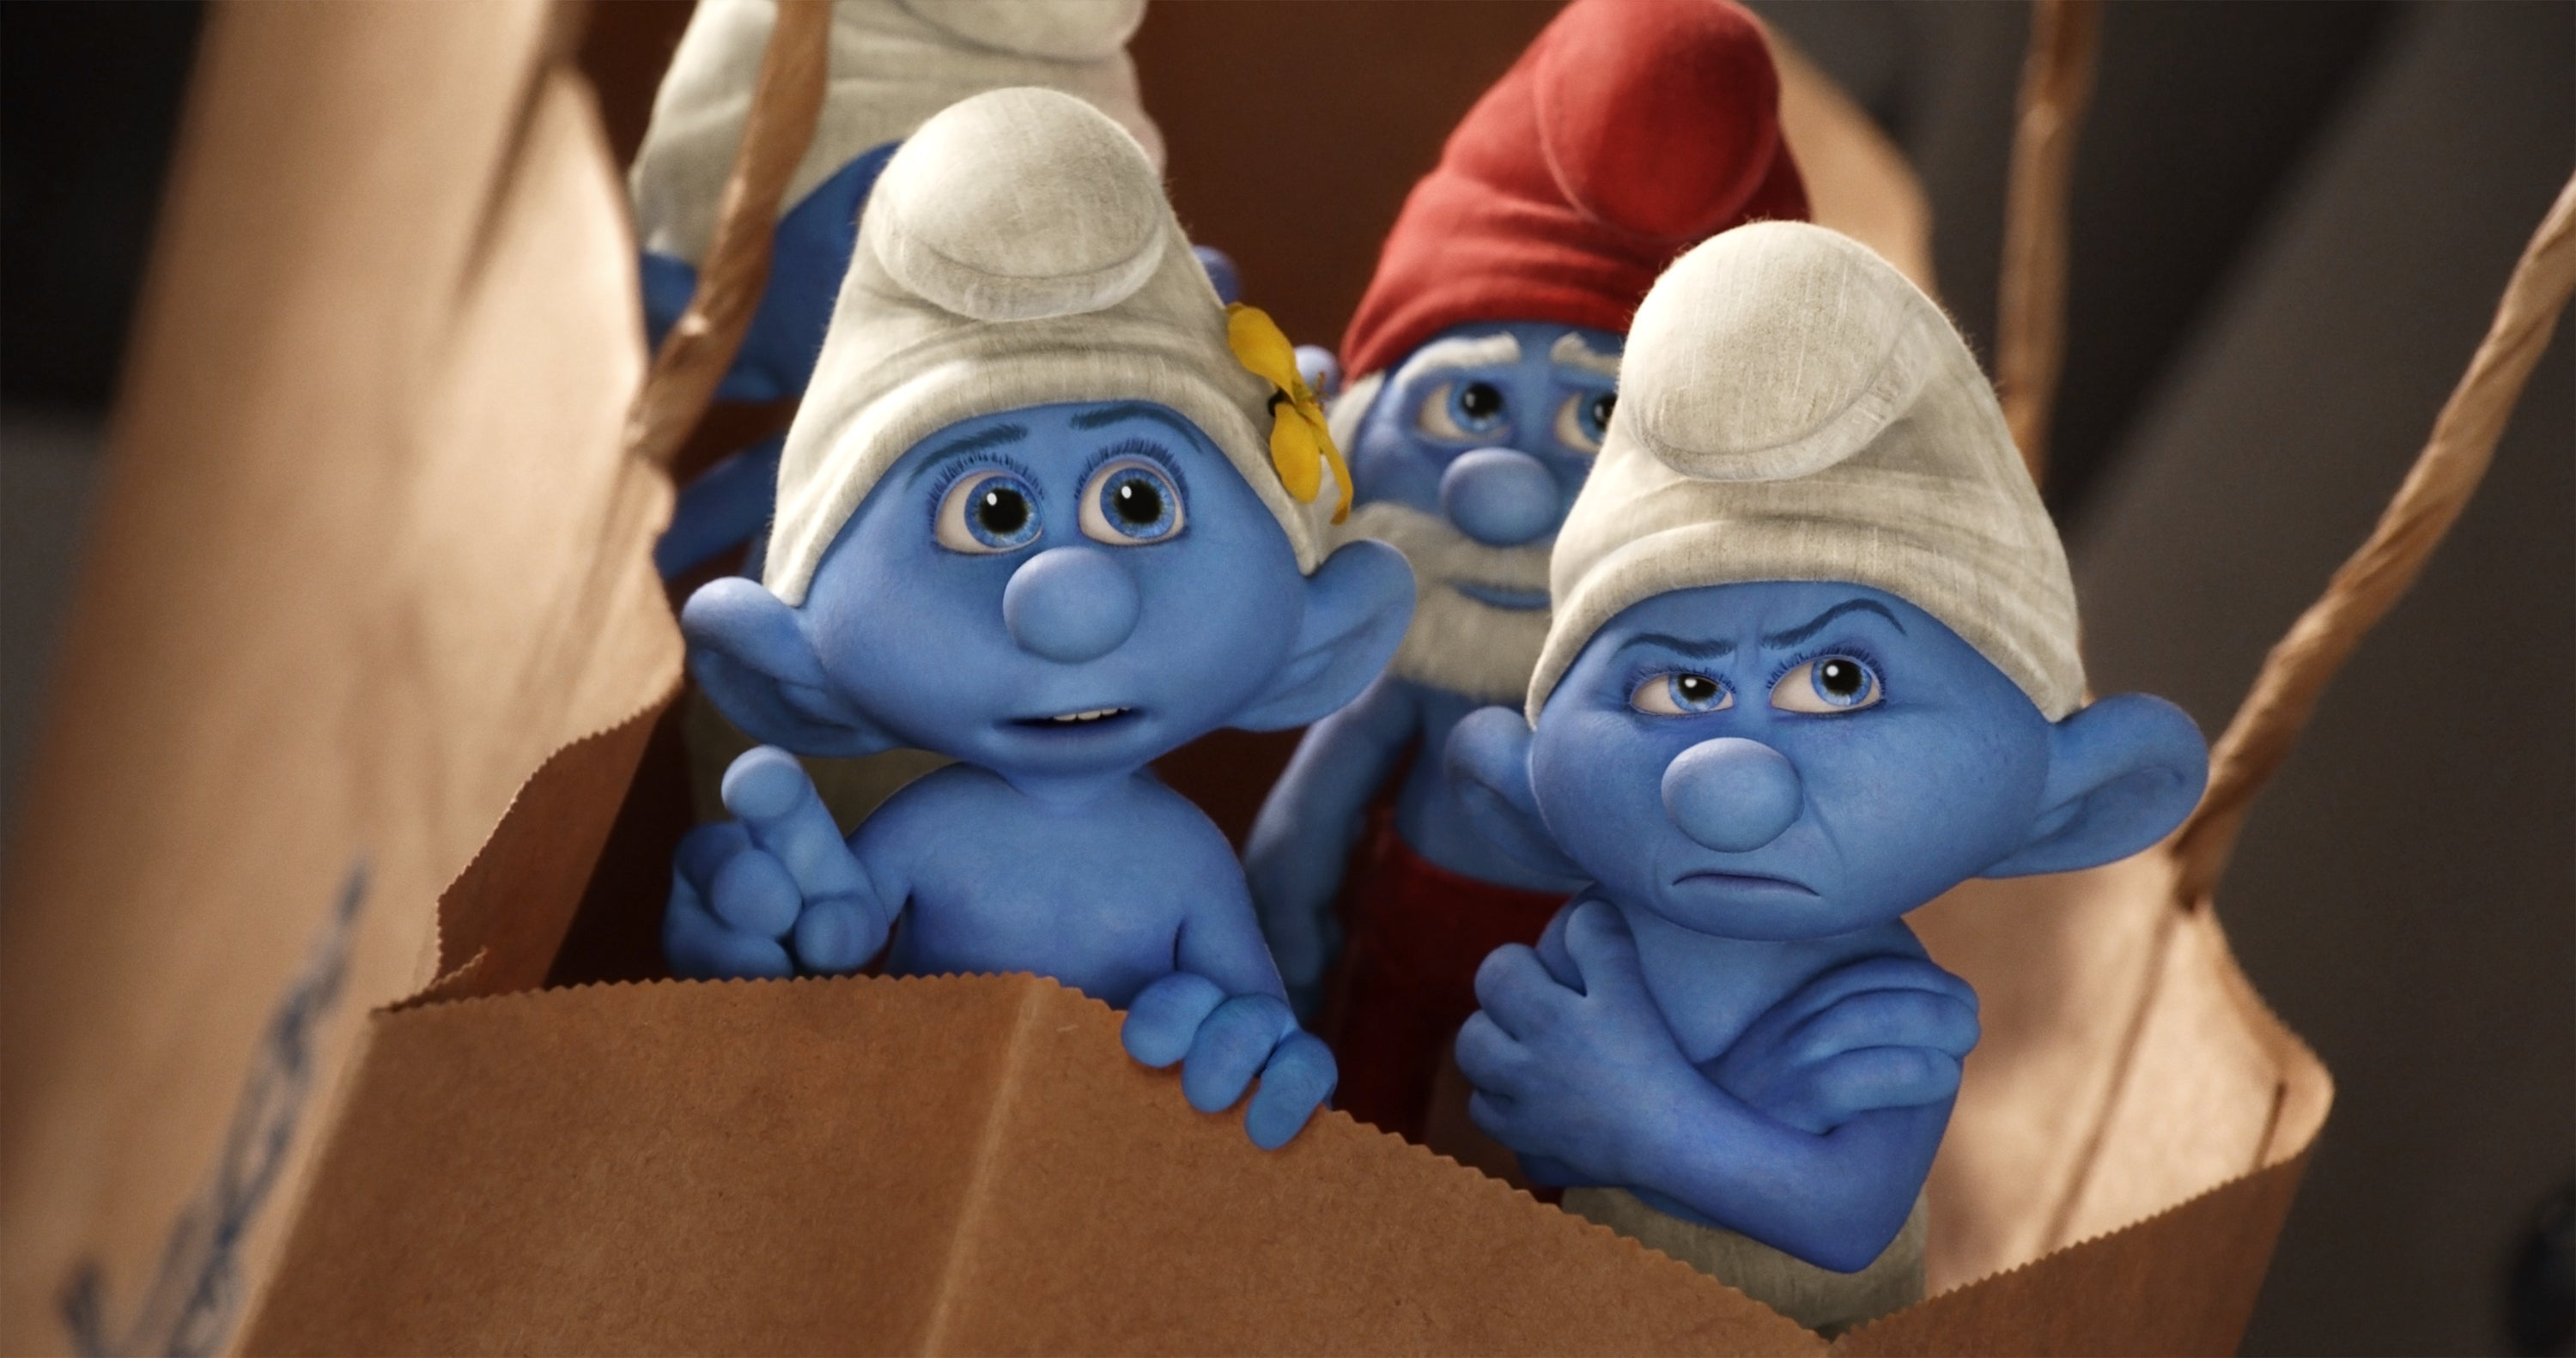 Exclusive Interview: The Smurfs 2 Director Raja Gosnell